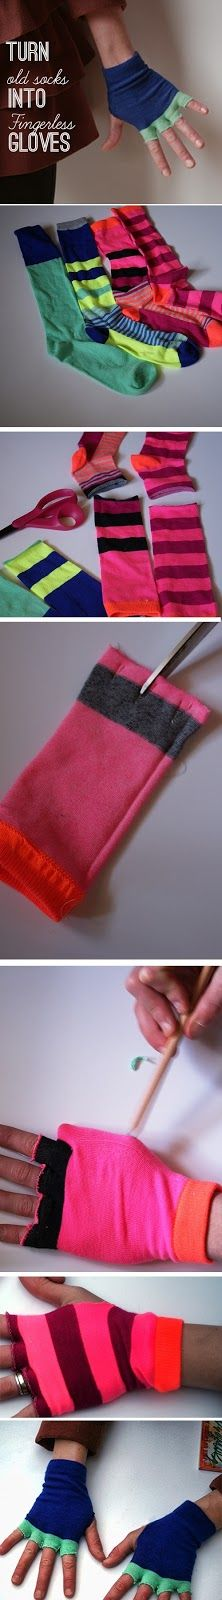 Upcycle old socks to fingerless gloves in this EASY diy Encore un autre tuto sur les chaussettes transfo en mitaines ; Sewing Hacks, Sewing Crafts, Sewing Projects, Diy Crafts, Diy Projects, Sock Crafts, Creative Crafts, Alter Pullover, 80s Outfit